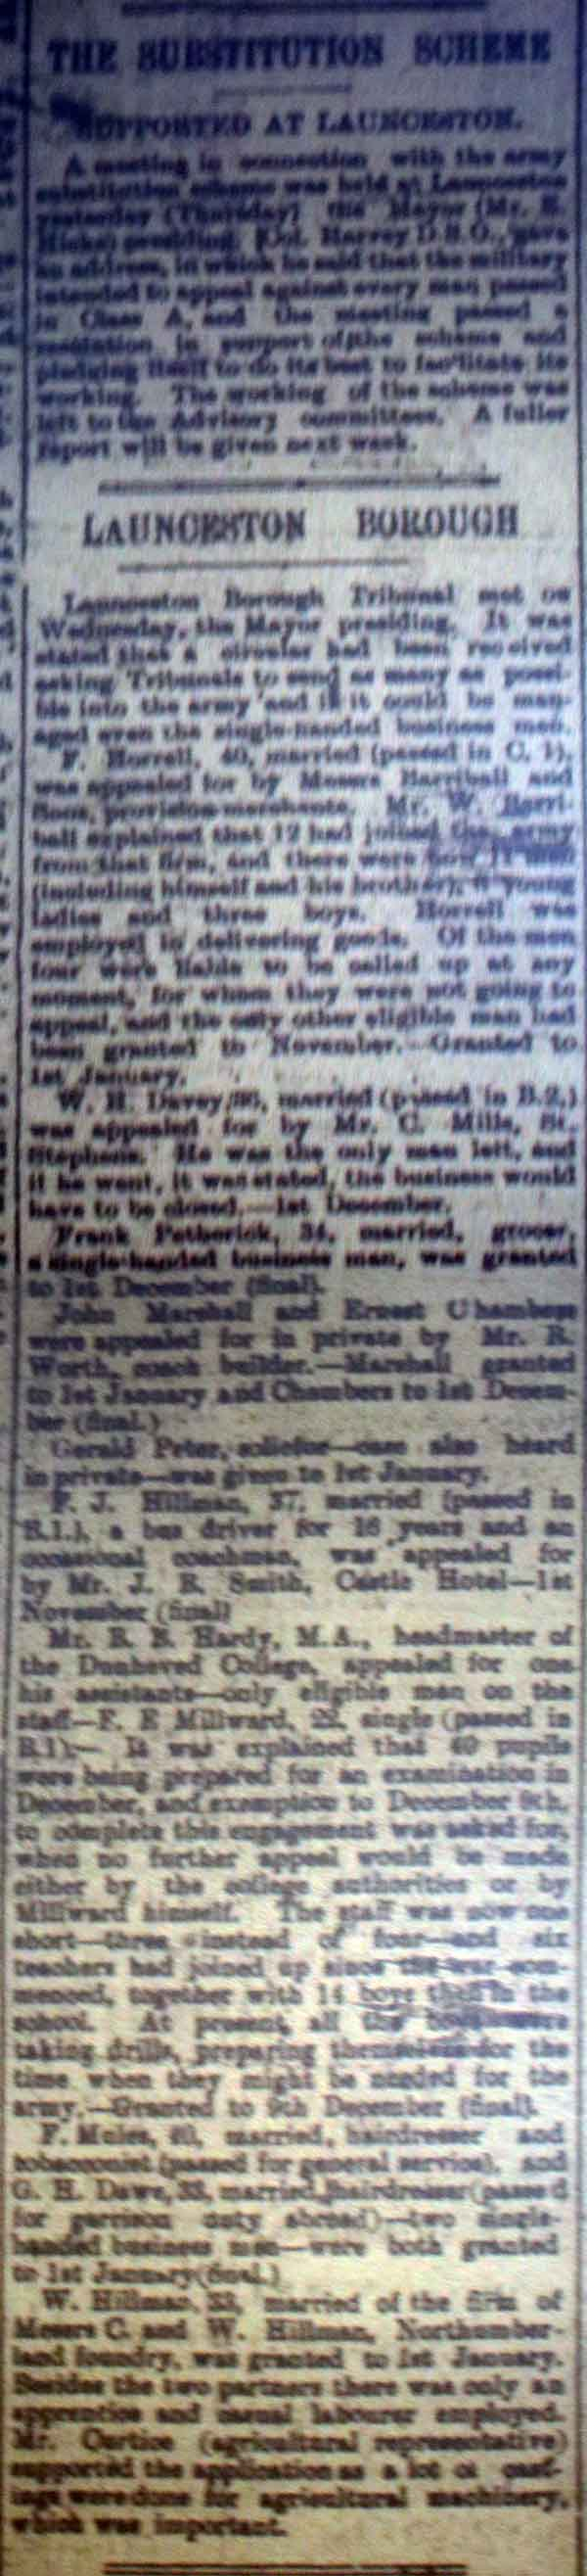 Launceston Tribunal October 7th, 1916